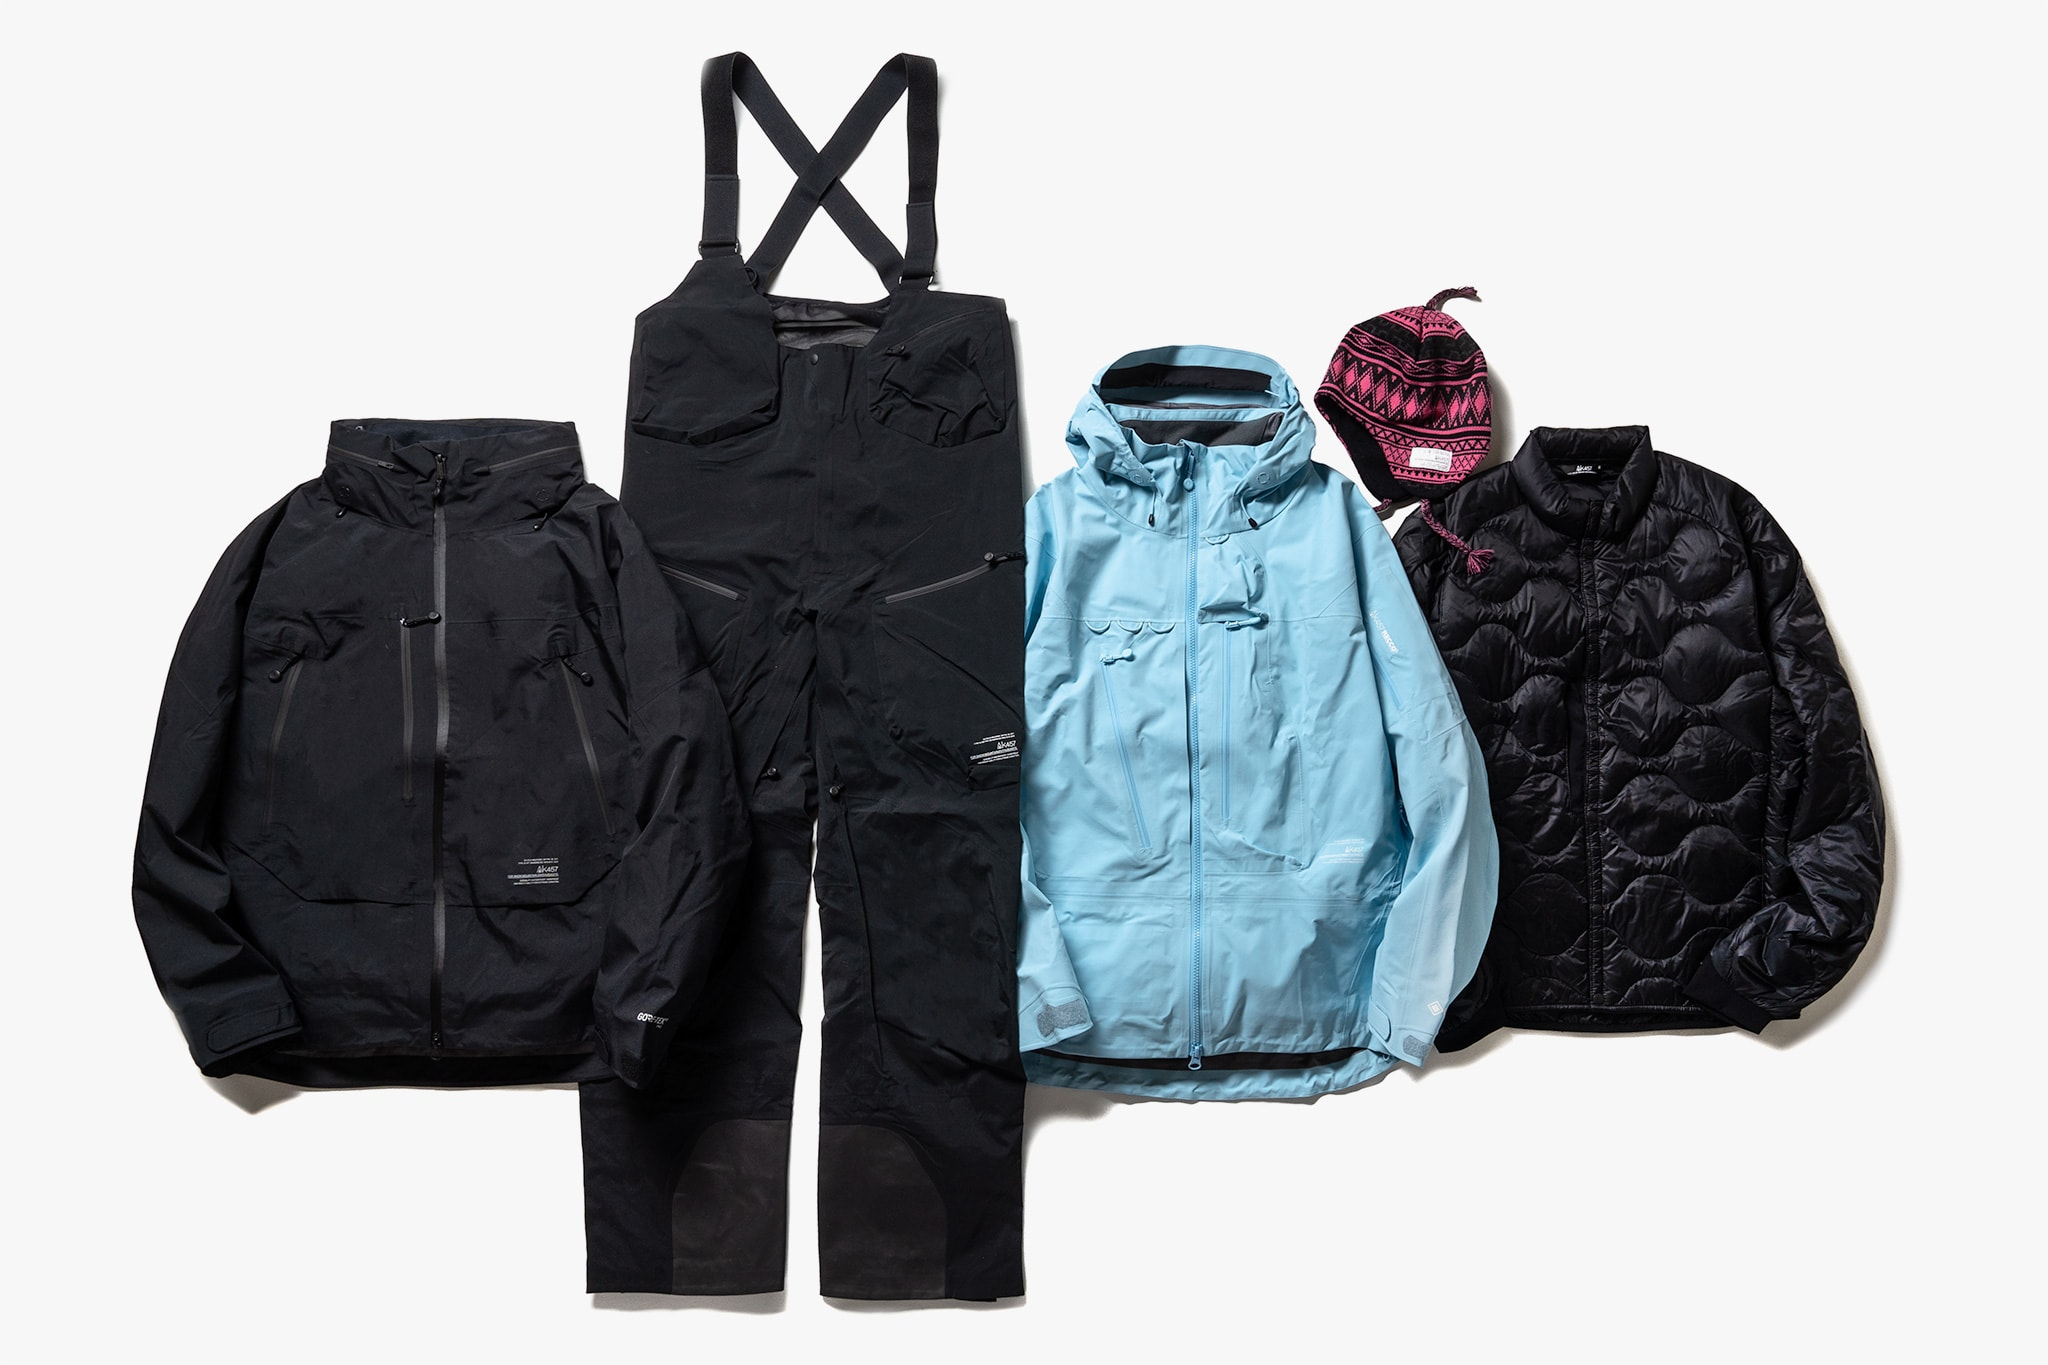 BURTON AK457 FW19 HAVEN NEW ARRIVALS